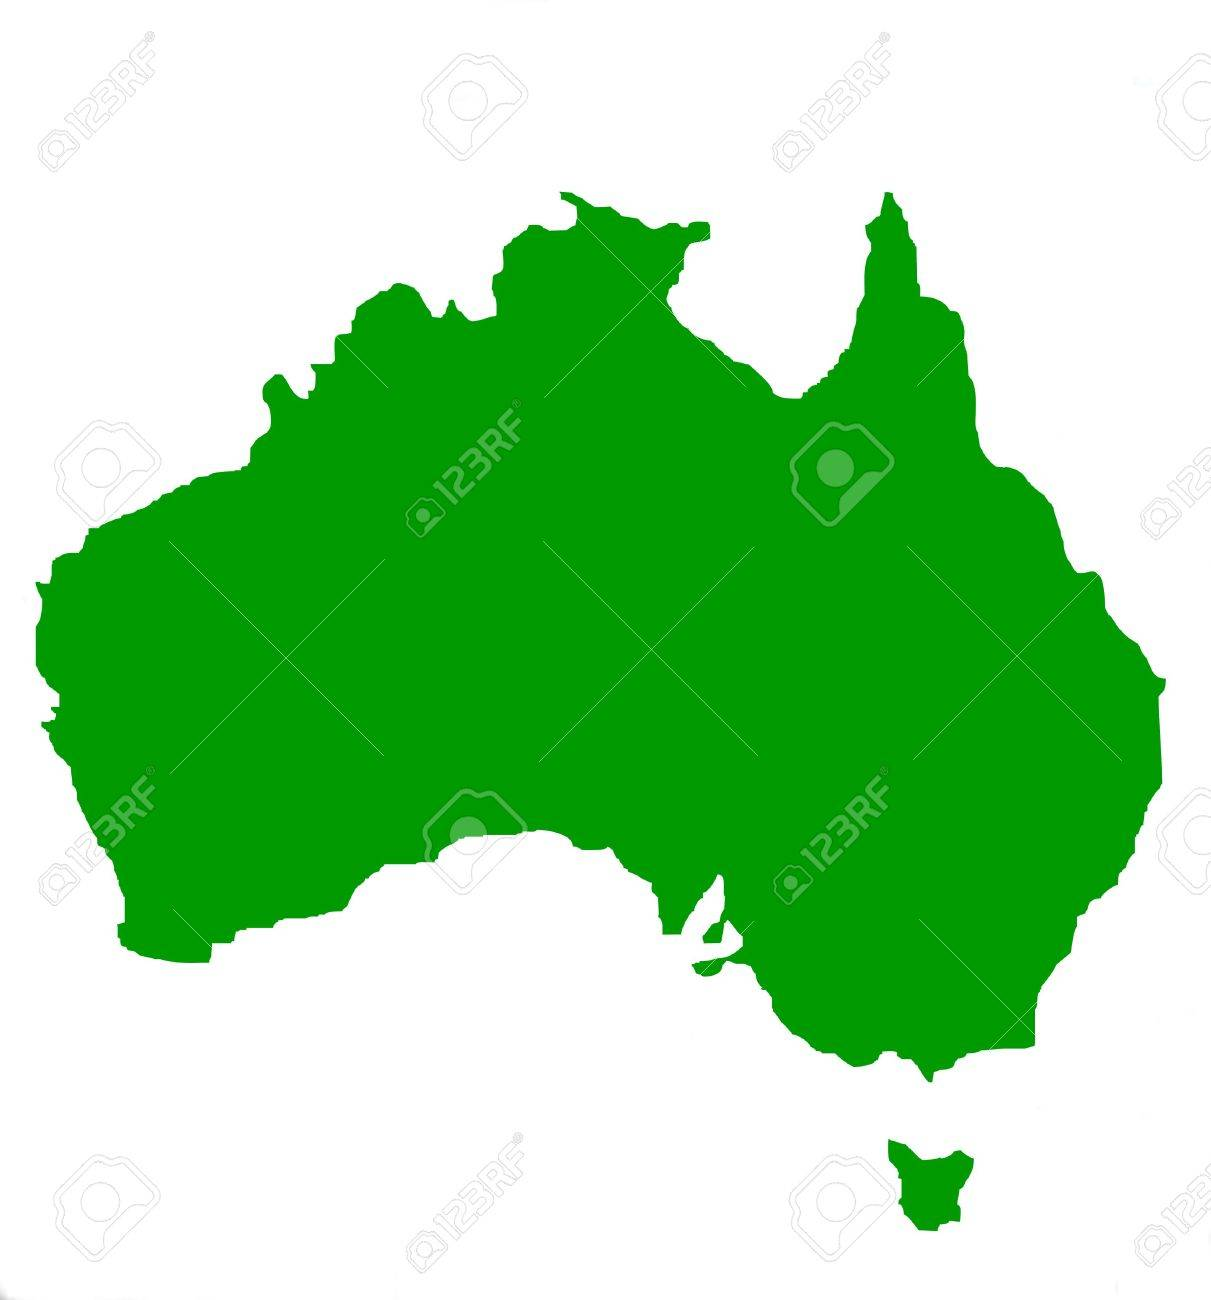 outline map of australia and tasmania in green isolated on white